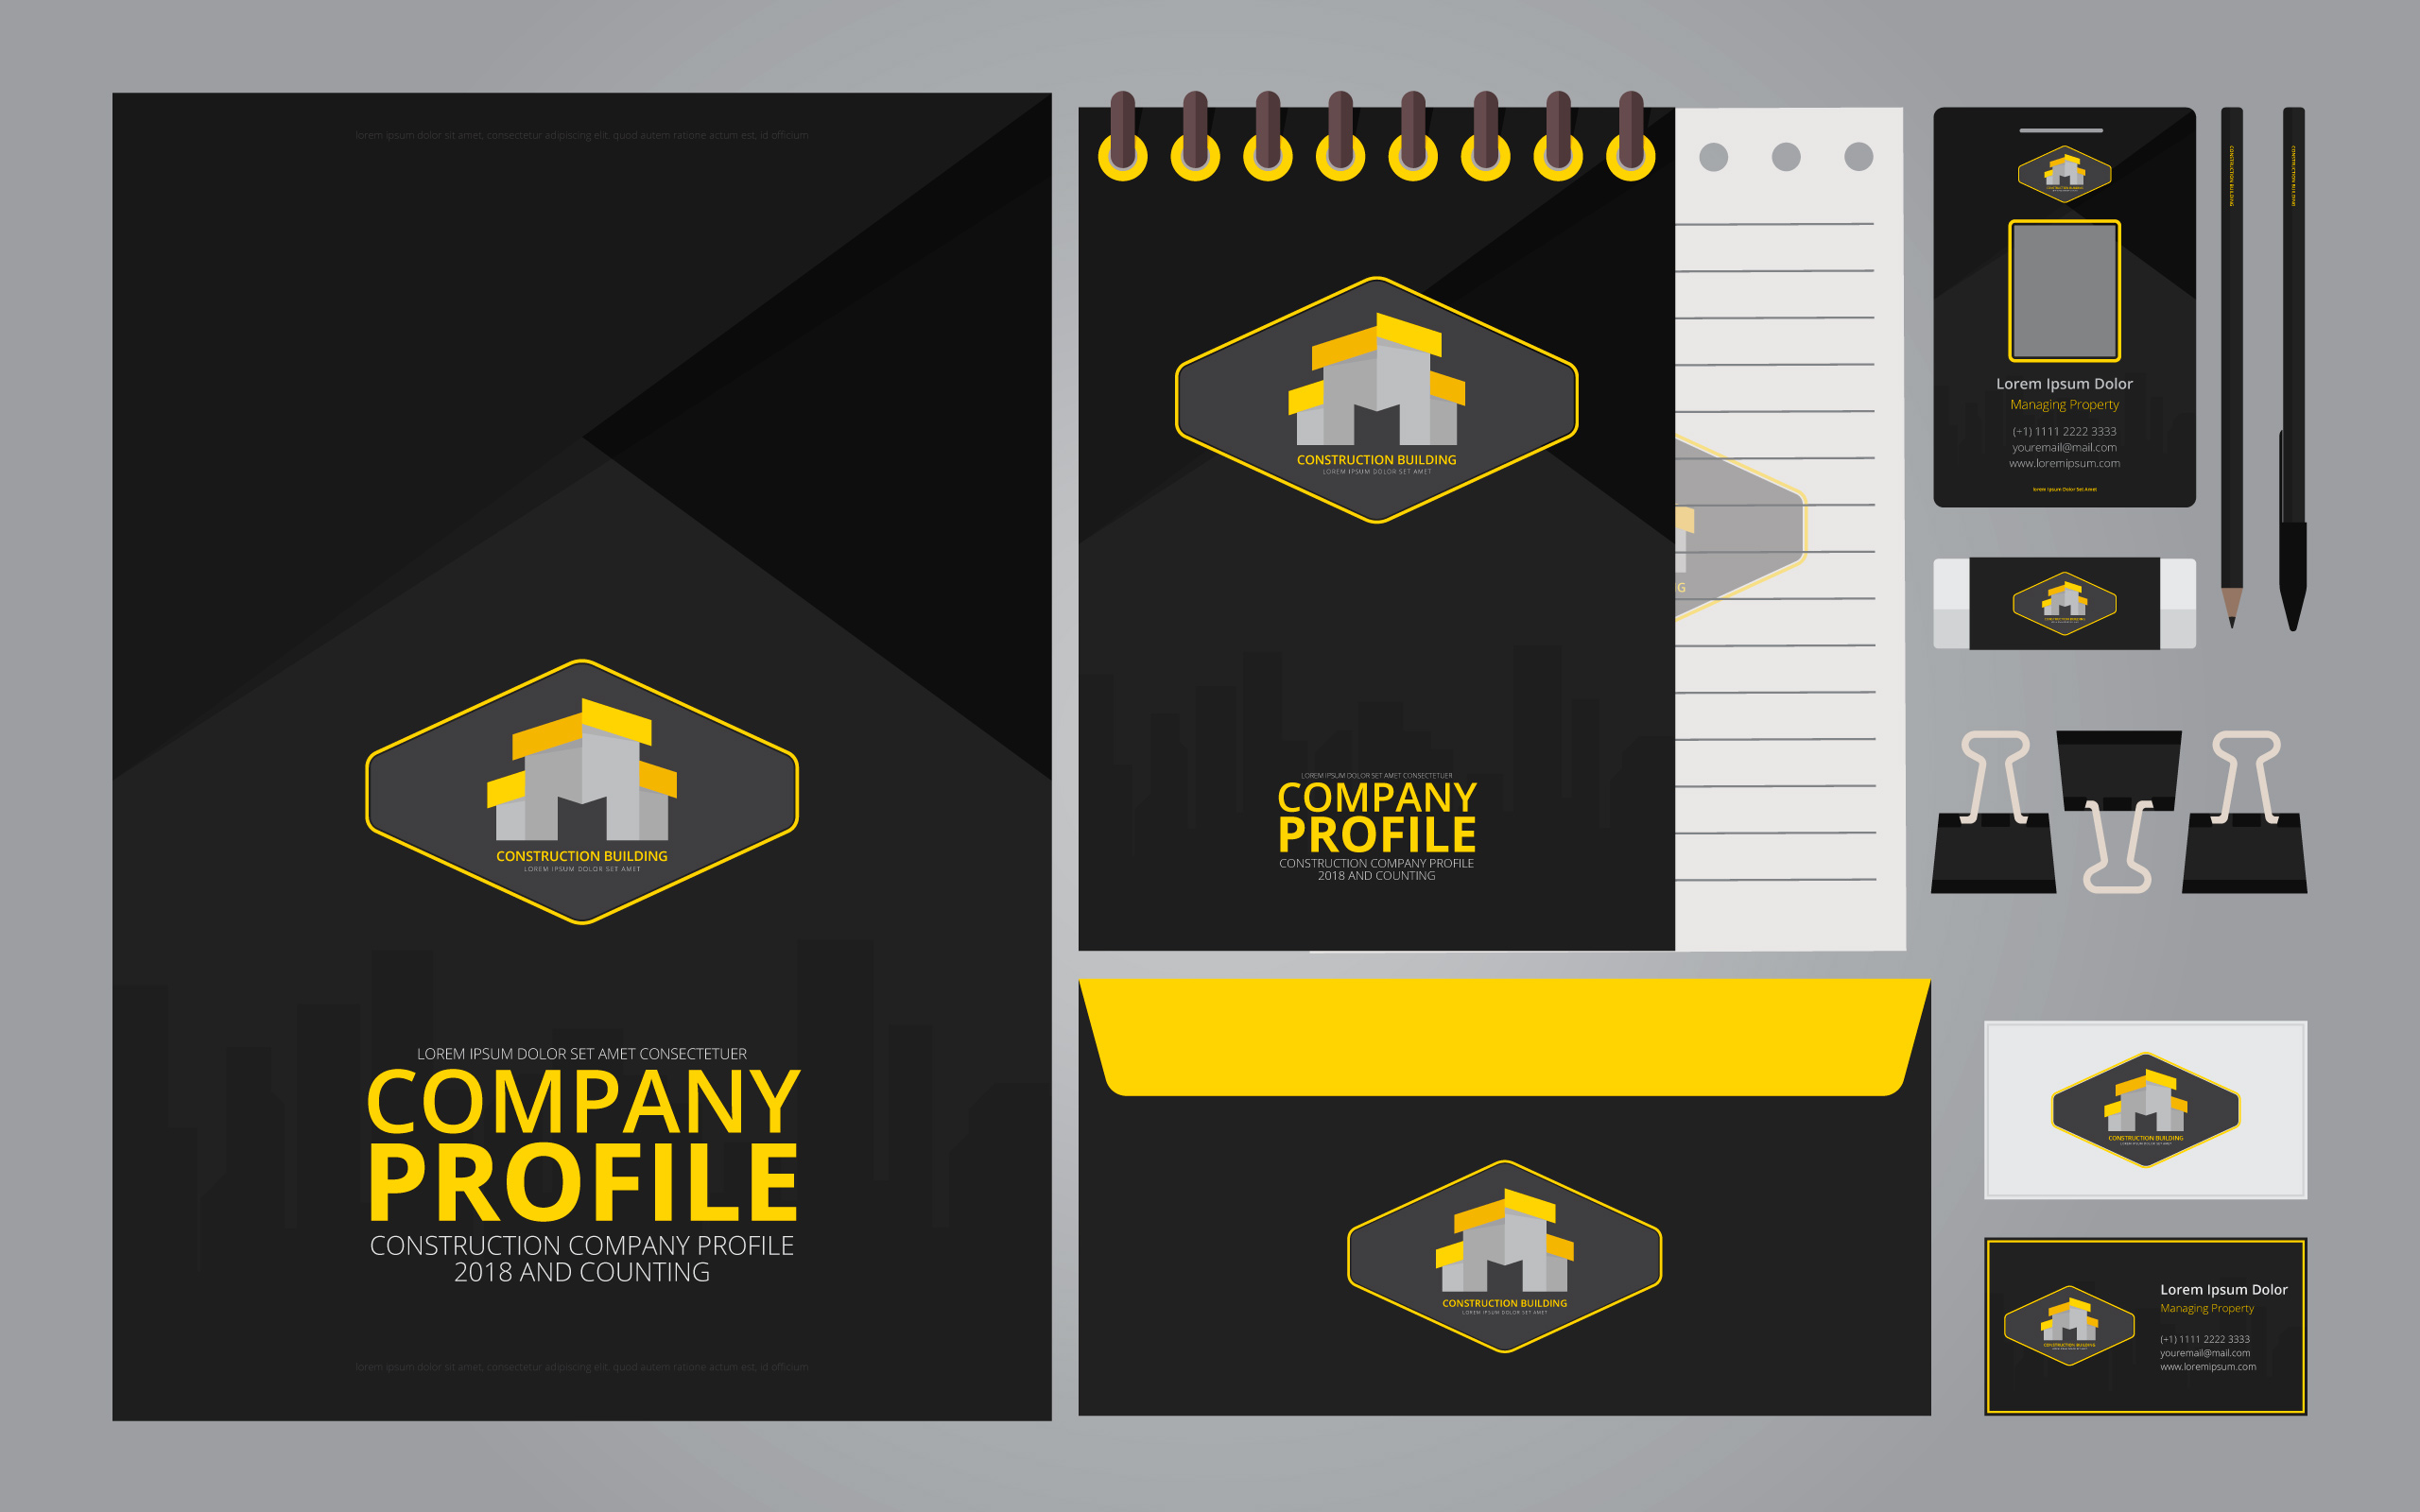 Construction Logos In Stationery Set Media Company Profile Template Free Vector Art Stock Graphics Images